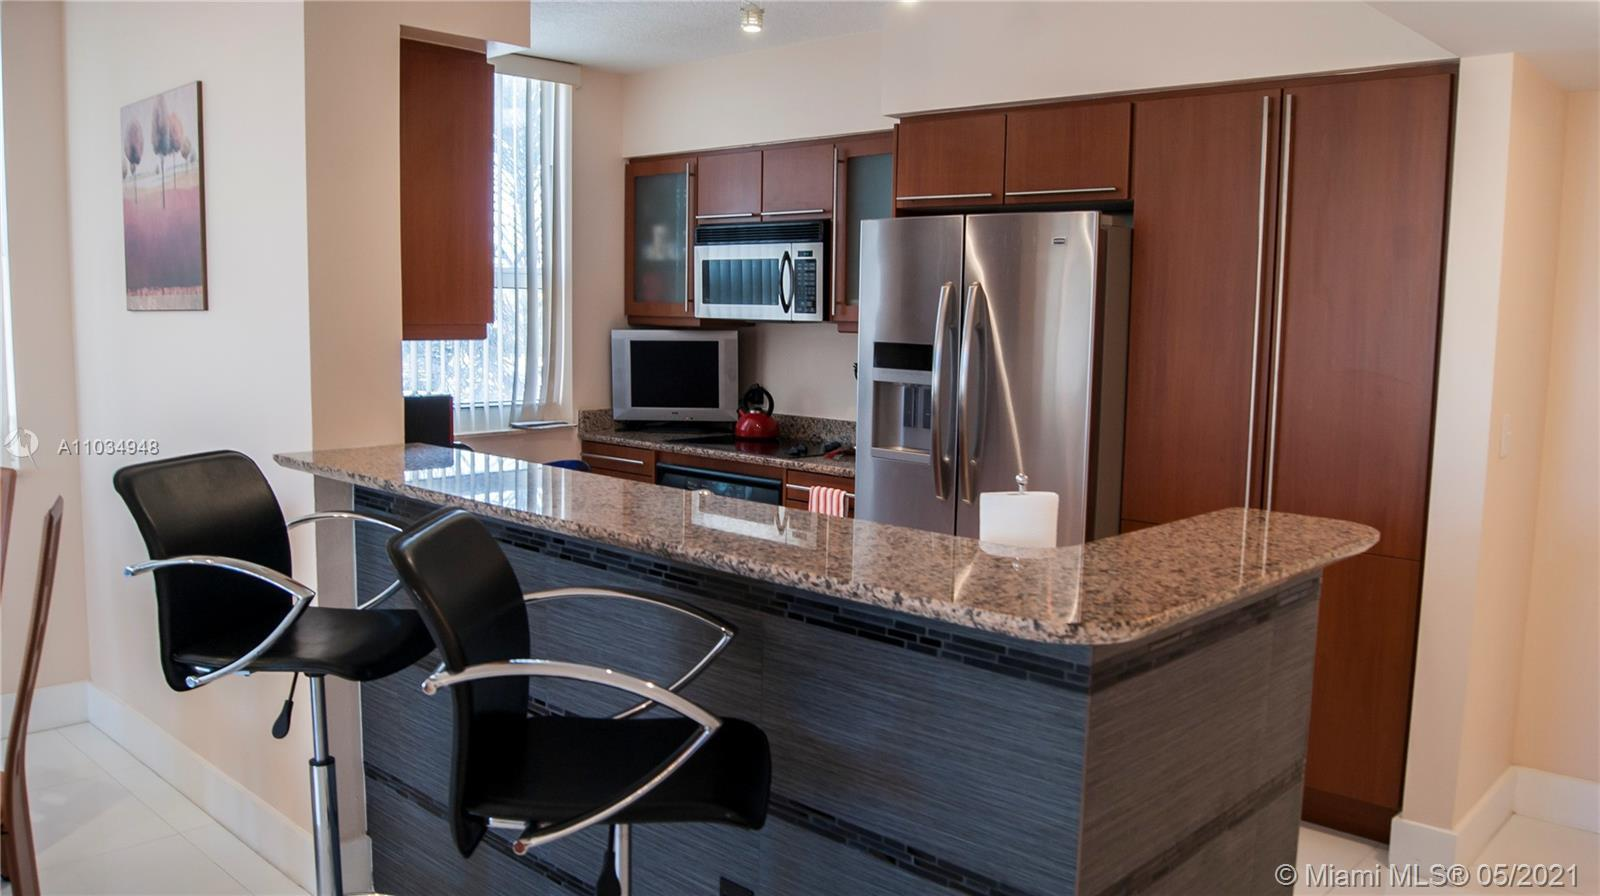 Turn Key fully furnished corner apartment with wrap around balcony in a newer construction boutique